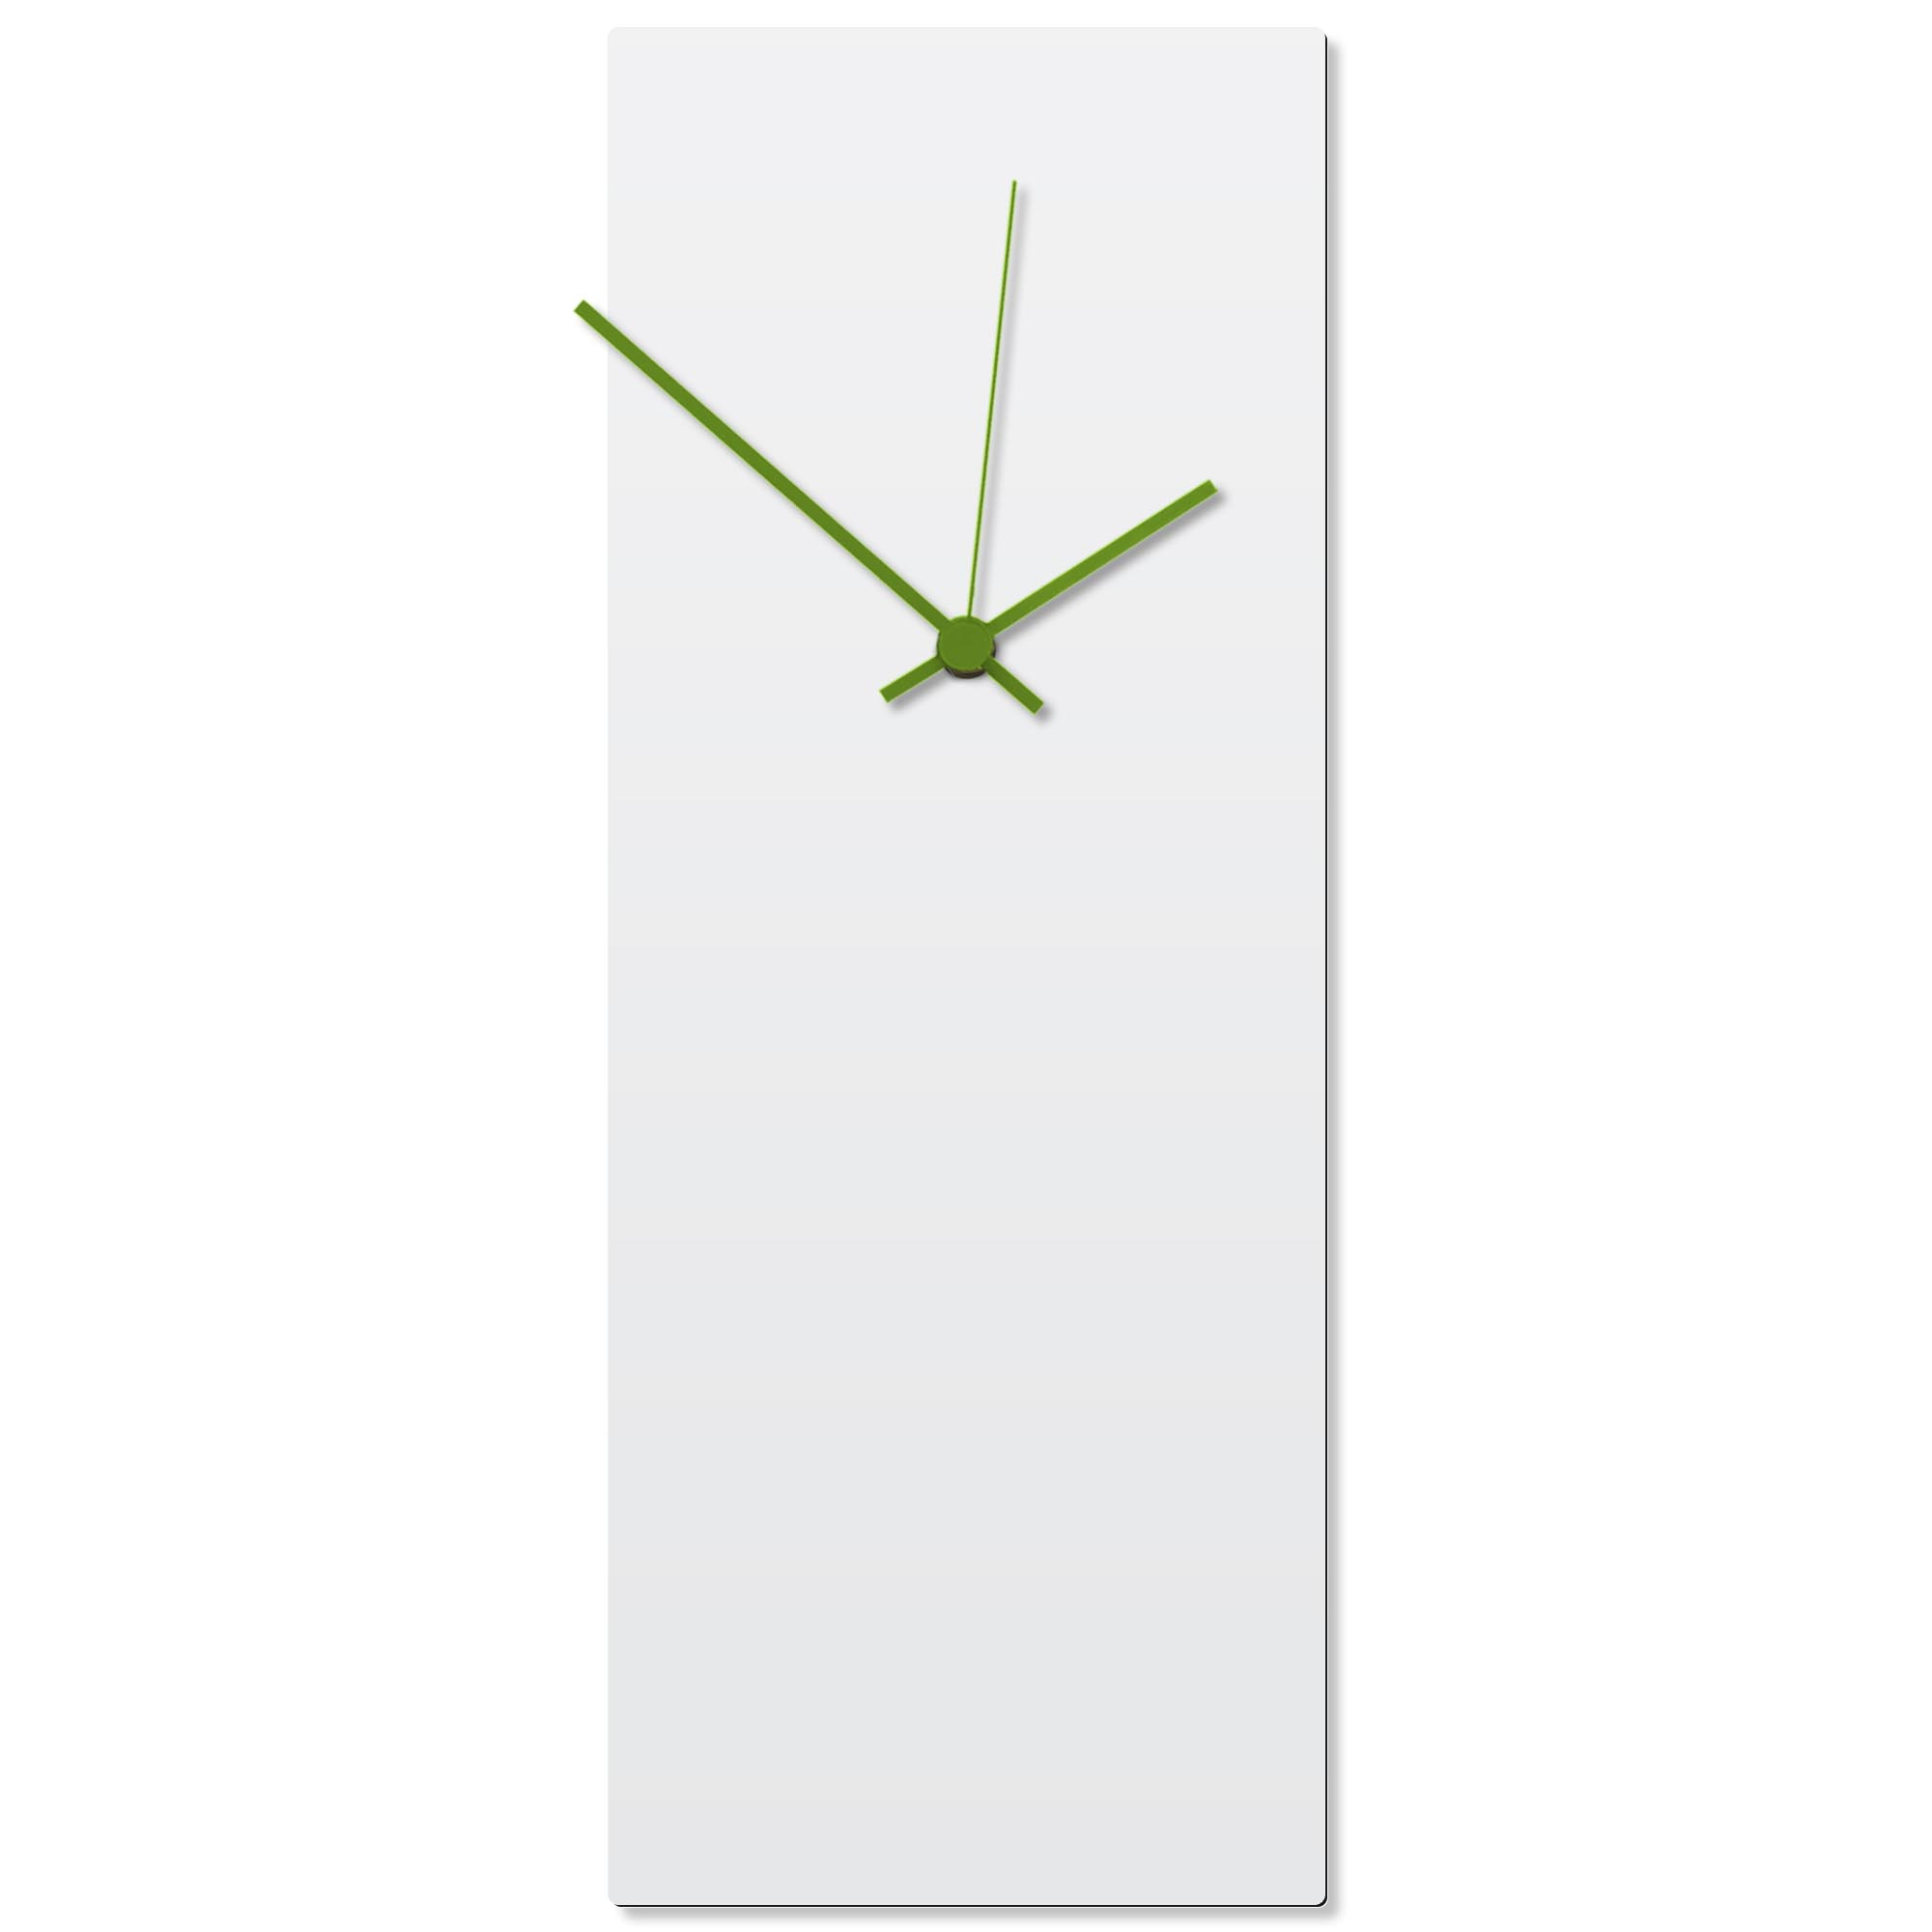 Whiteout Green Clock Large 8.25x22in. Aluminum Polymetal